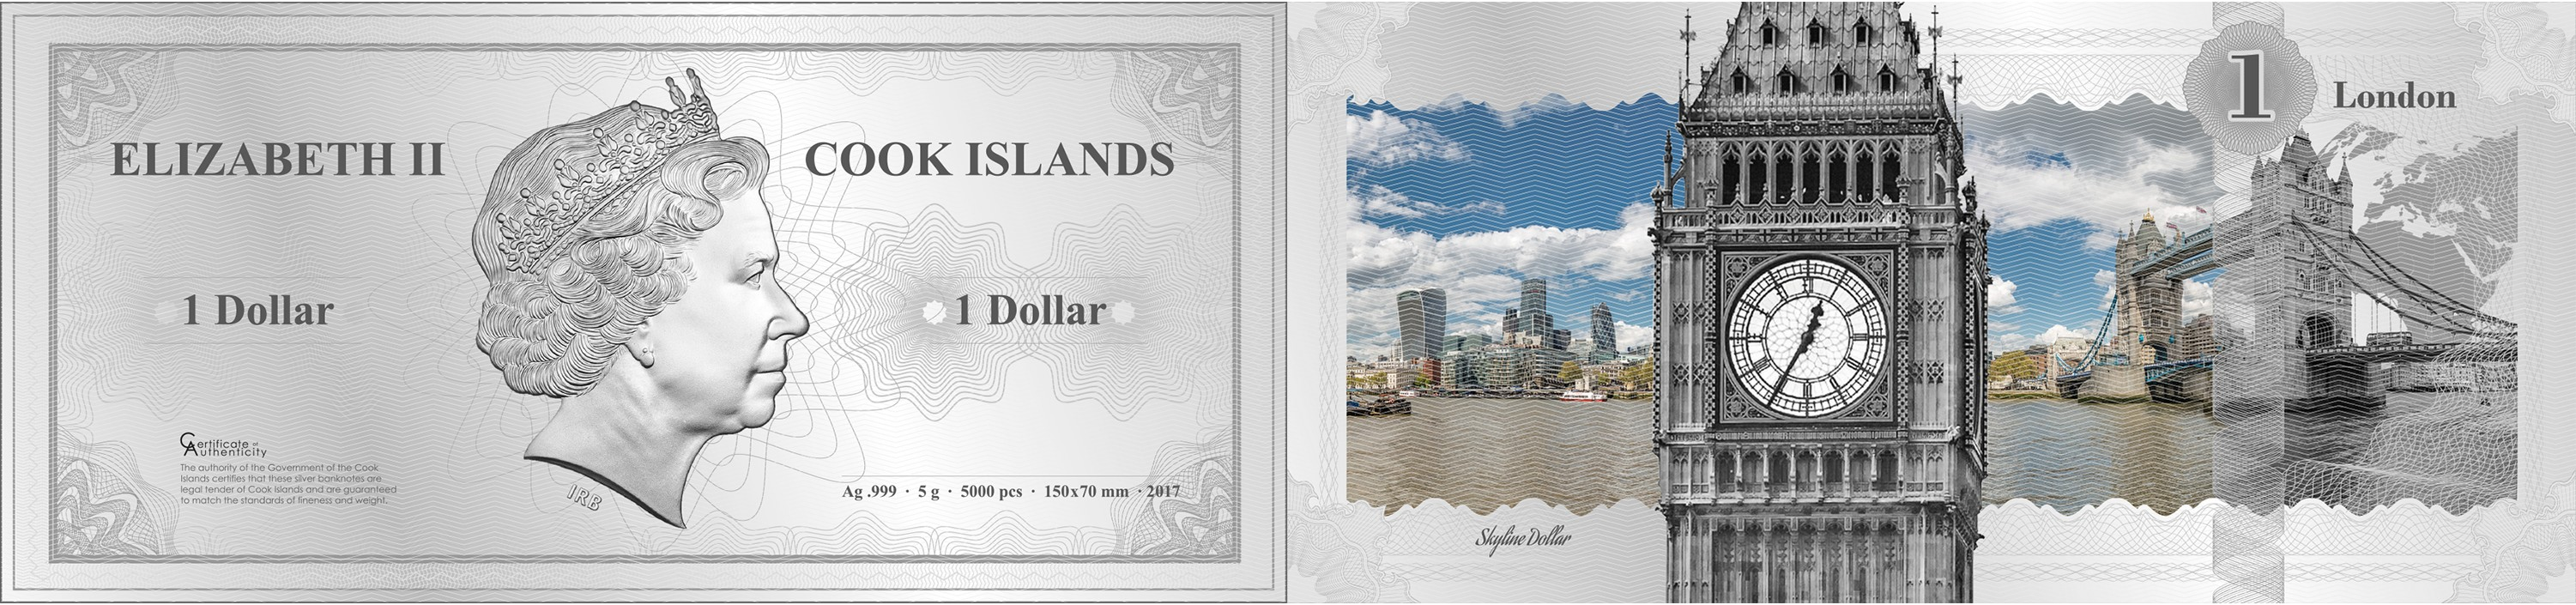 cook isl 2017 skyline dollar londres